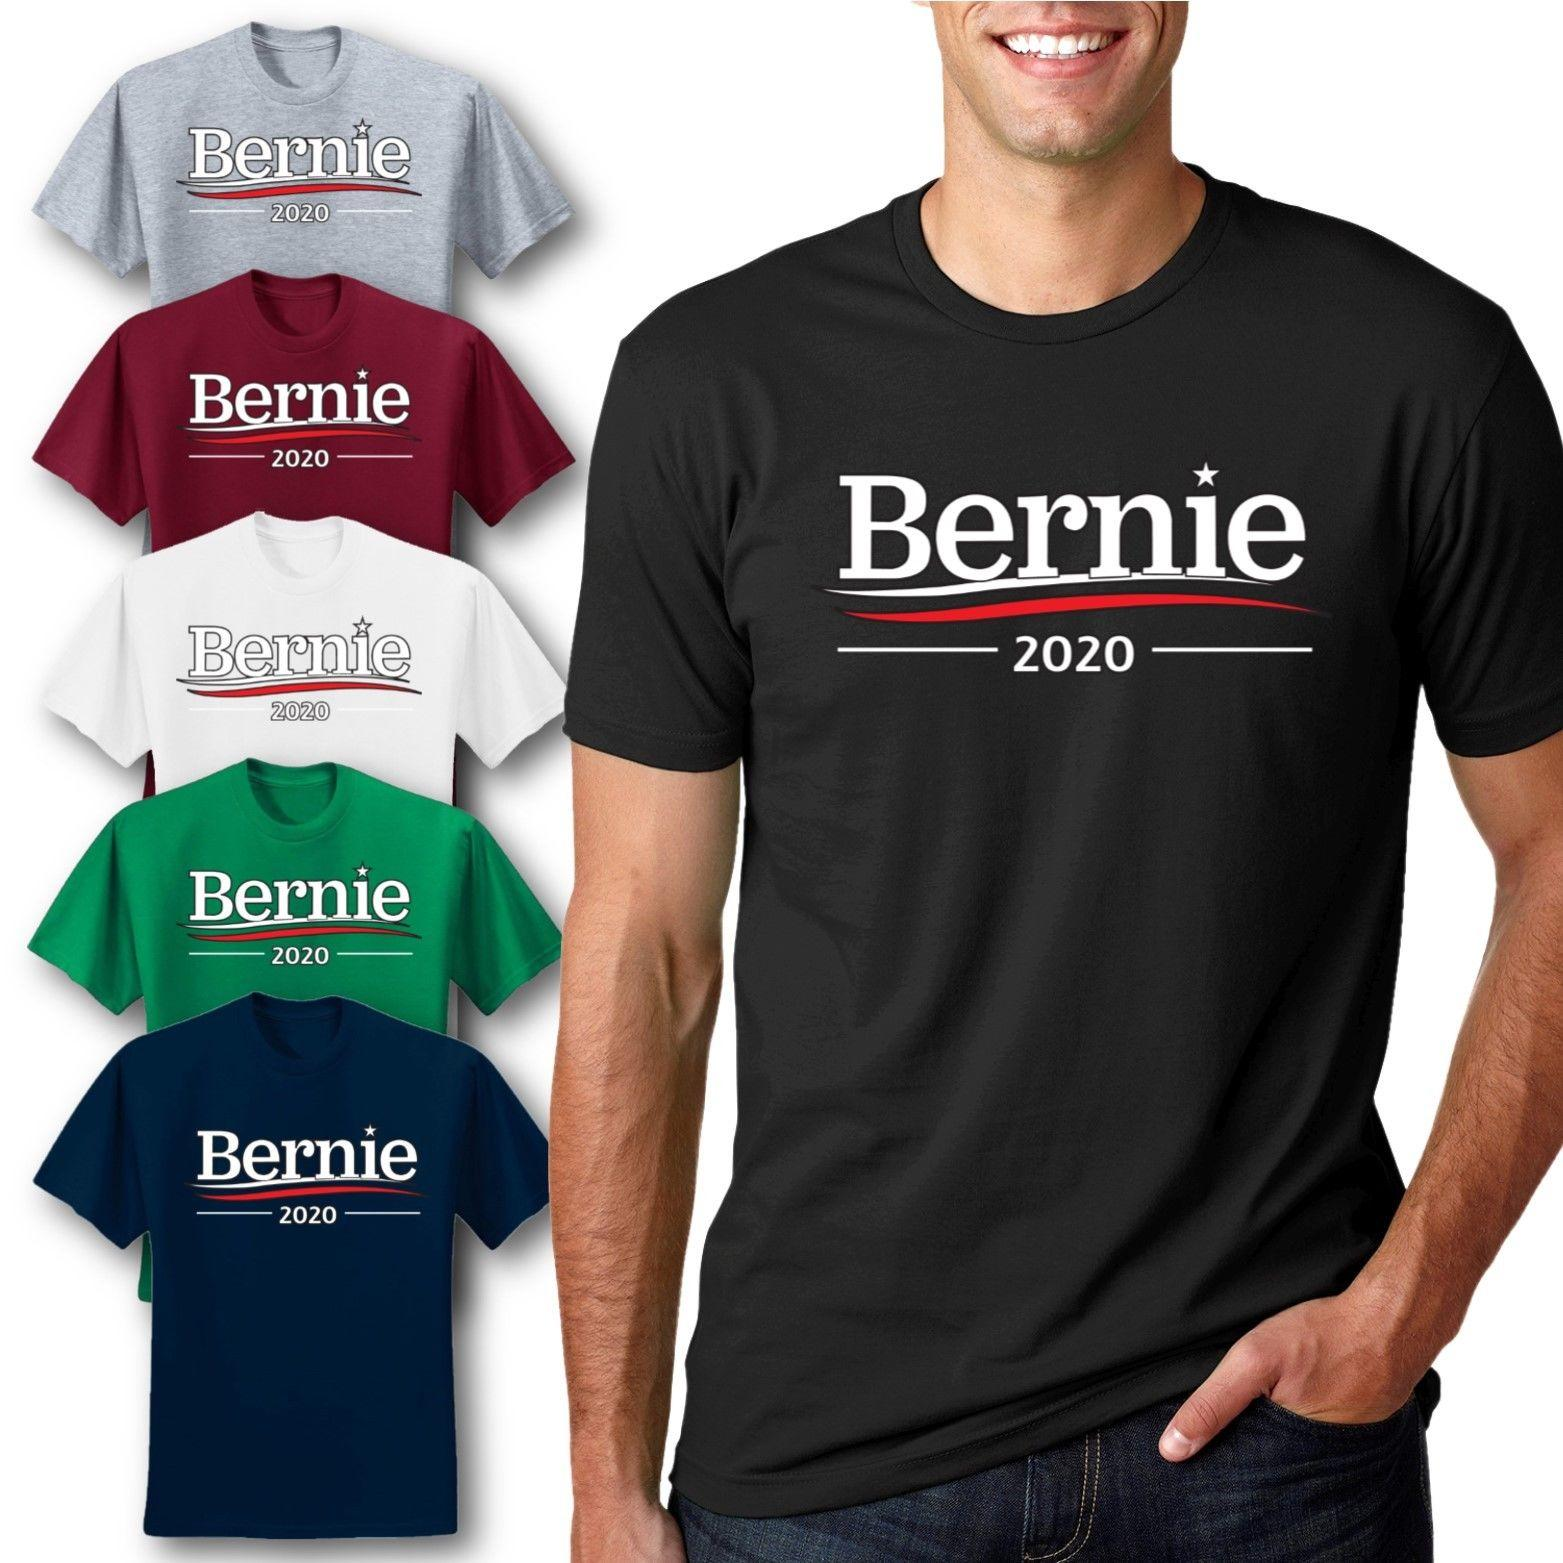 d01093f99 Bernie 2020 Official Campaign T Shirt Graphic US Election Politics Voting  TeeFunny Unisex Casual Tshirt Top T Shart Fun Shirts From Pepitaprint, ...